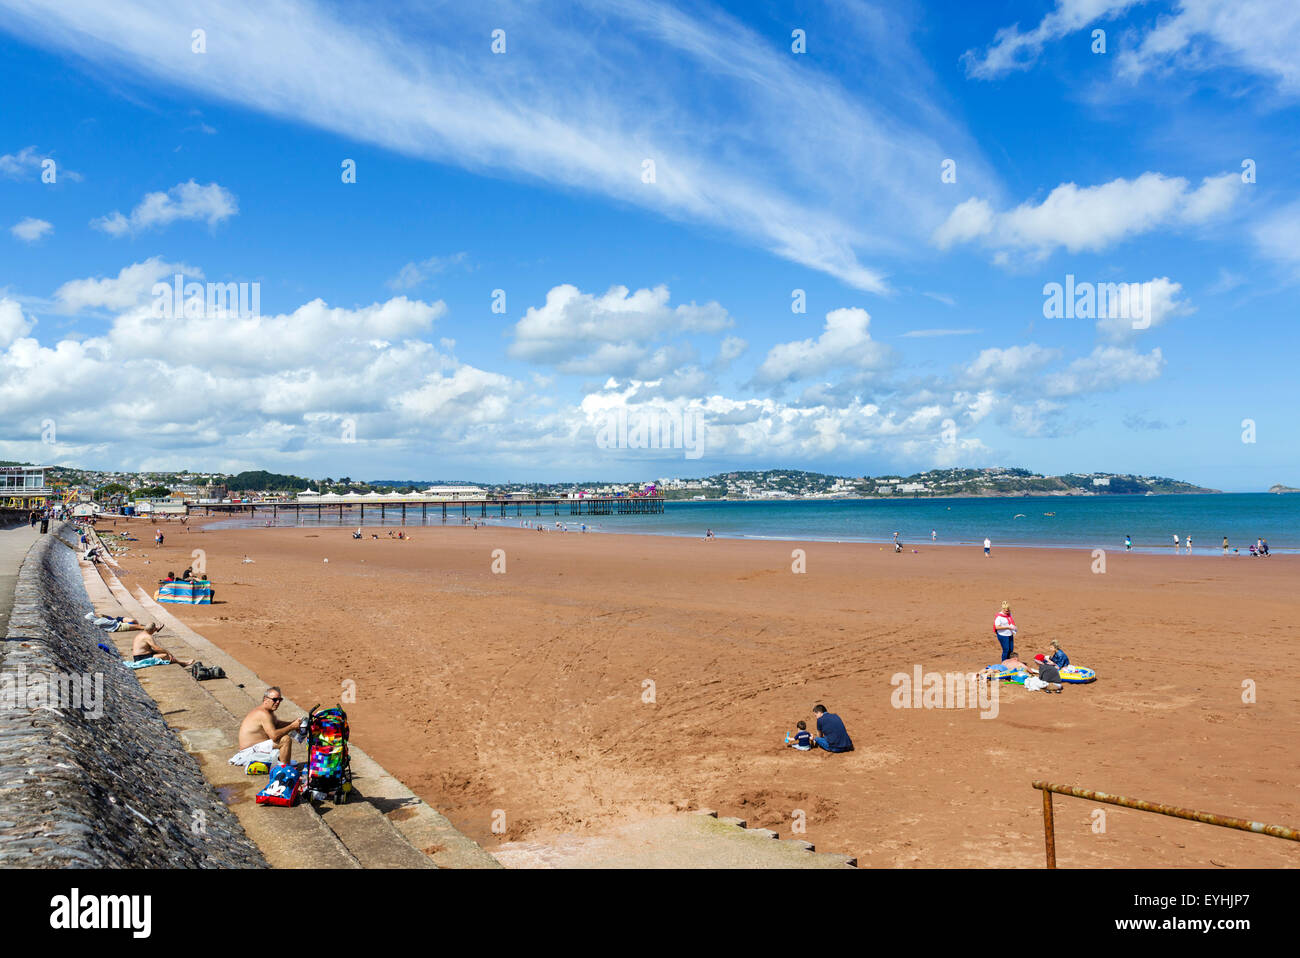 The beach and pier in Paignton, Torbay, Devon, England, UK - Stock Image